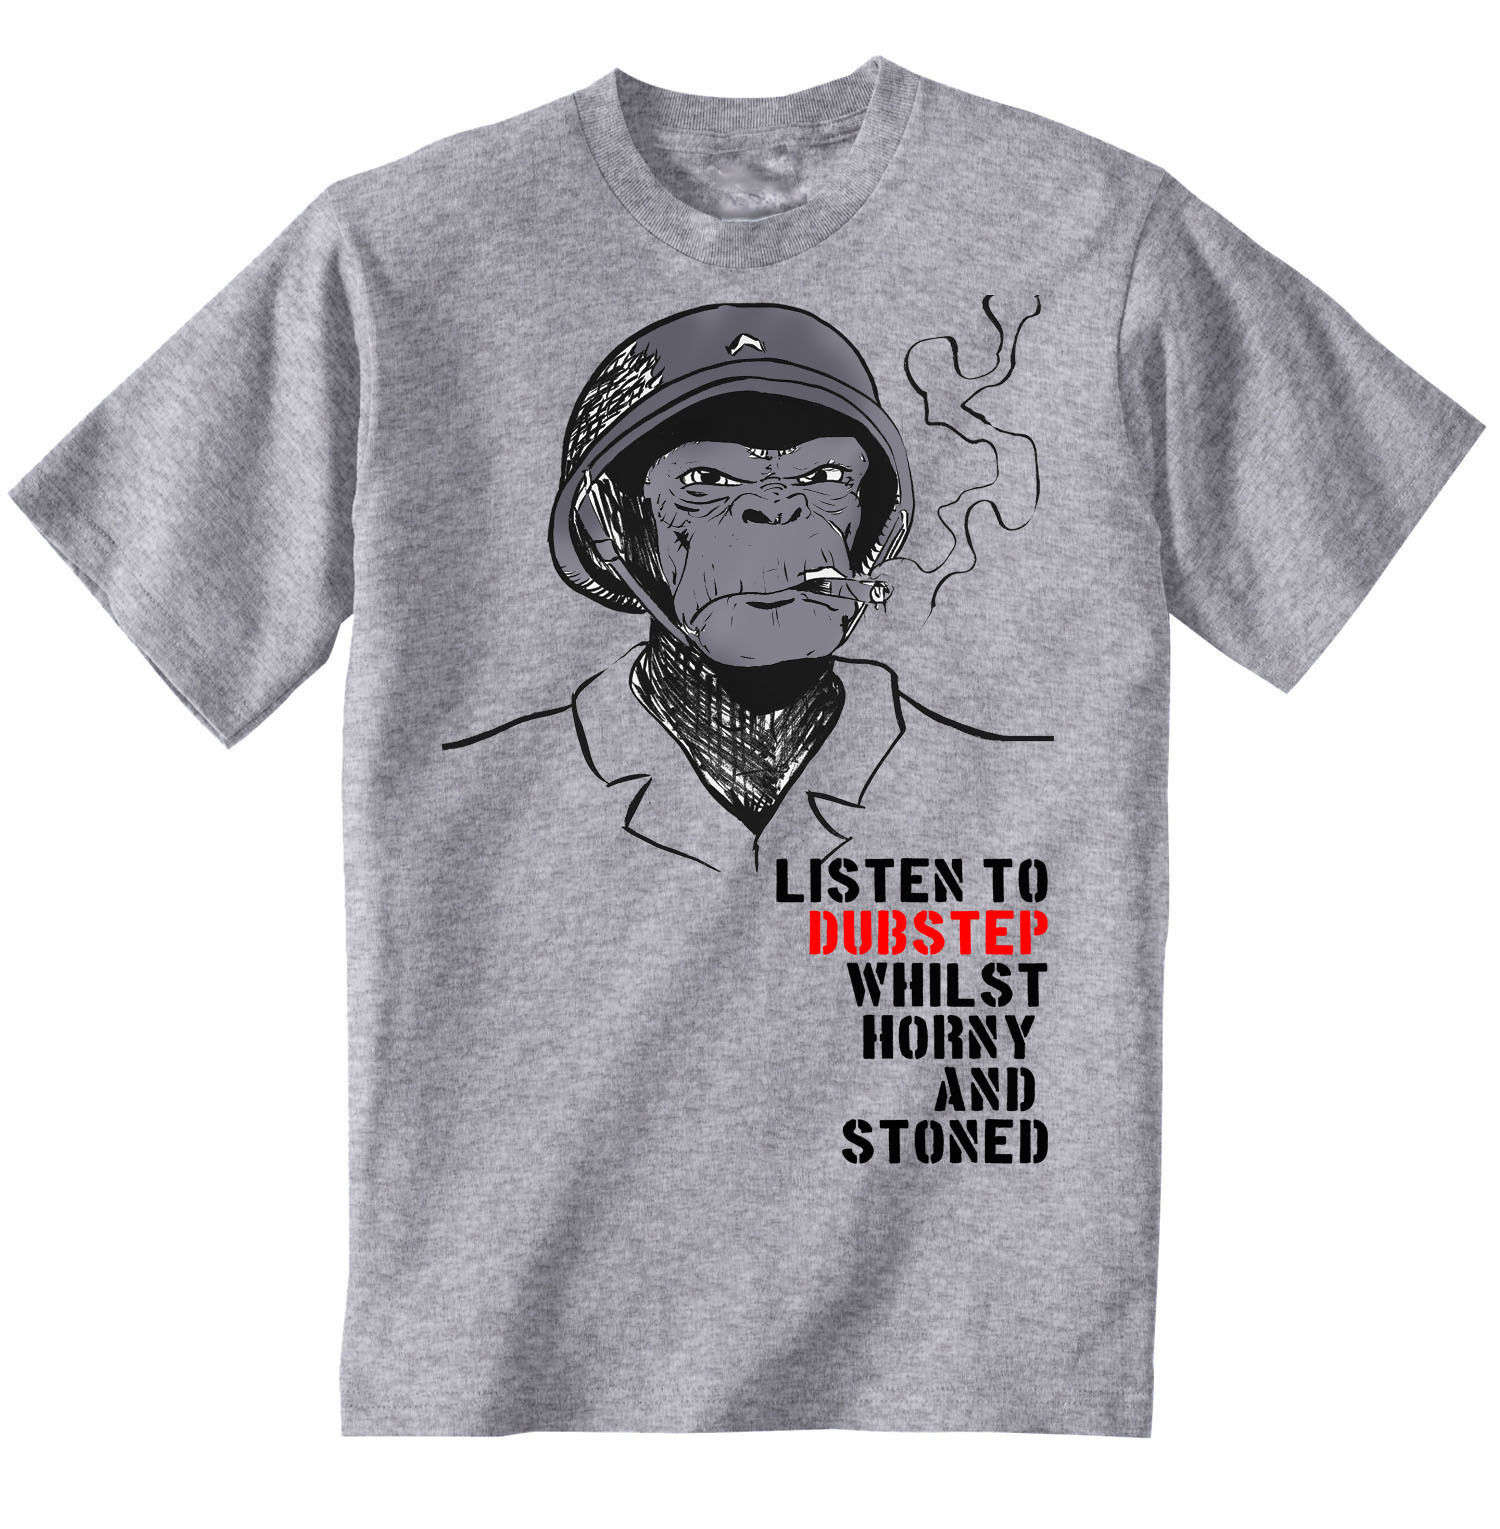 Primary image for DUBSTEP HORNY AND STONED - NEW GRAPHIC GREY TSHIRT- S-M-L-XL-XXL